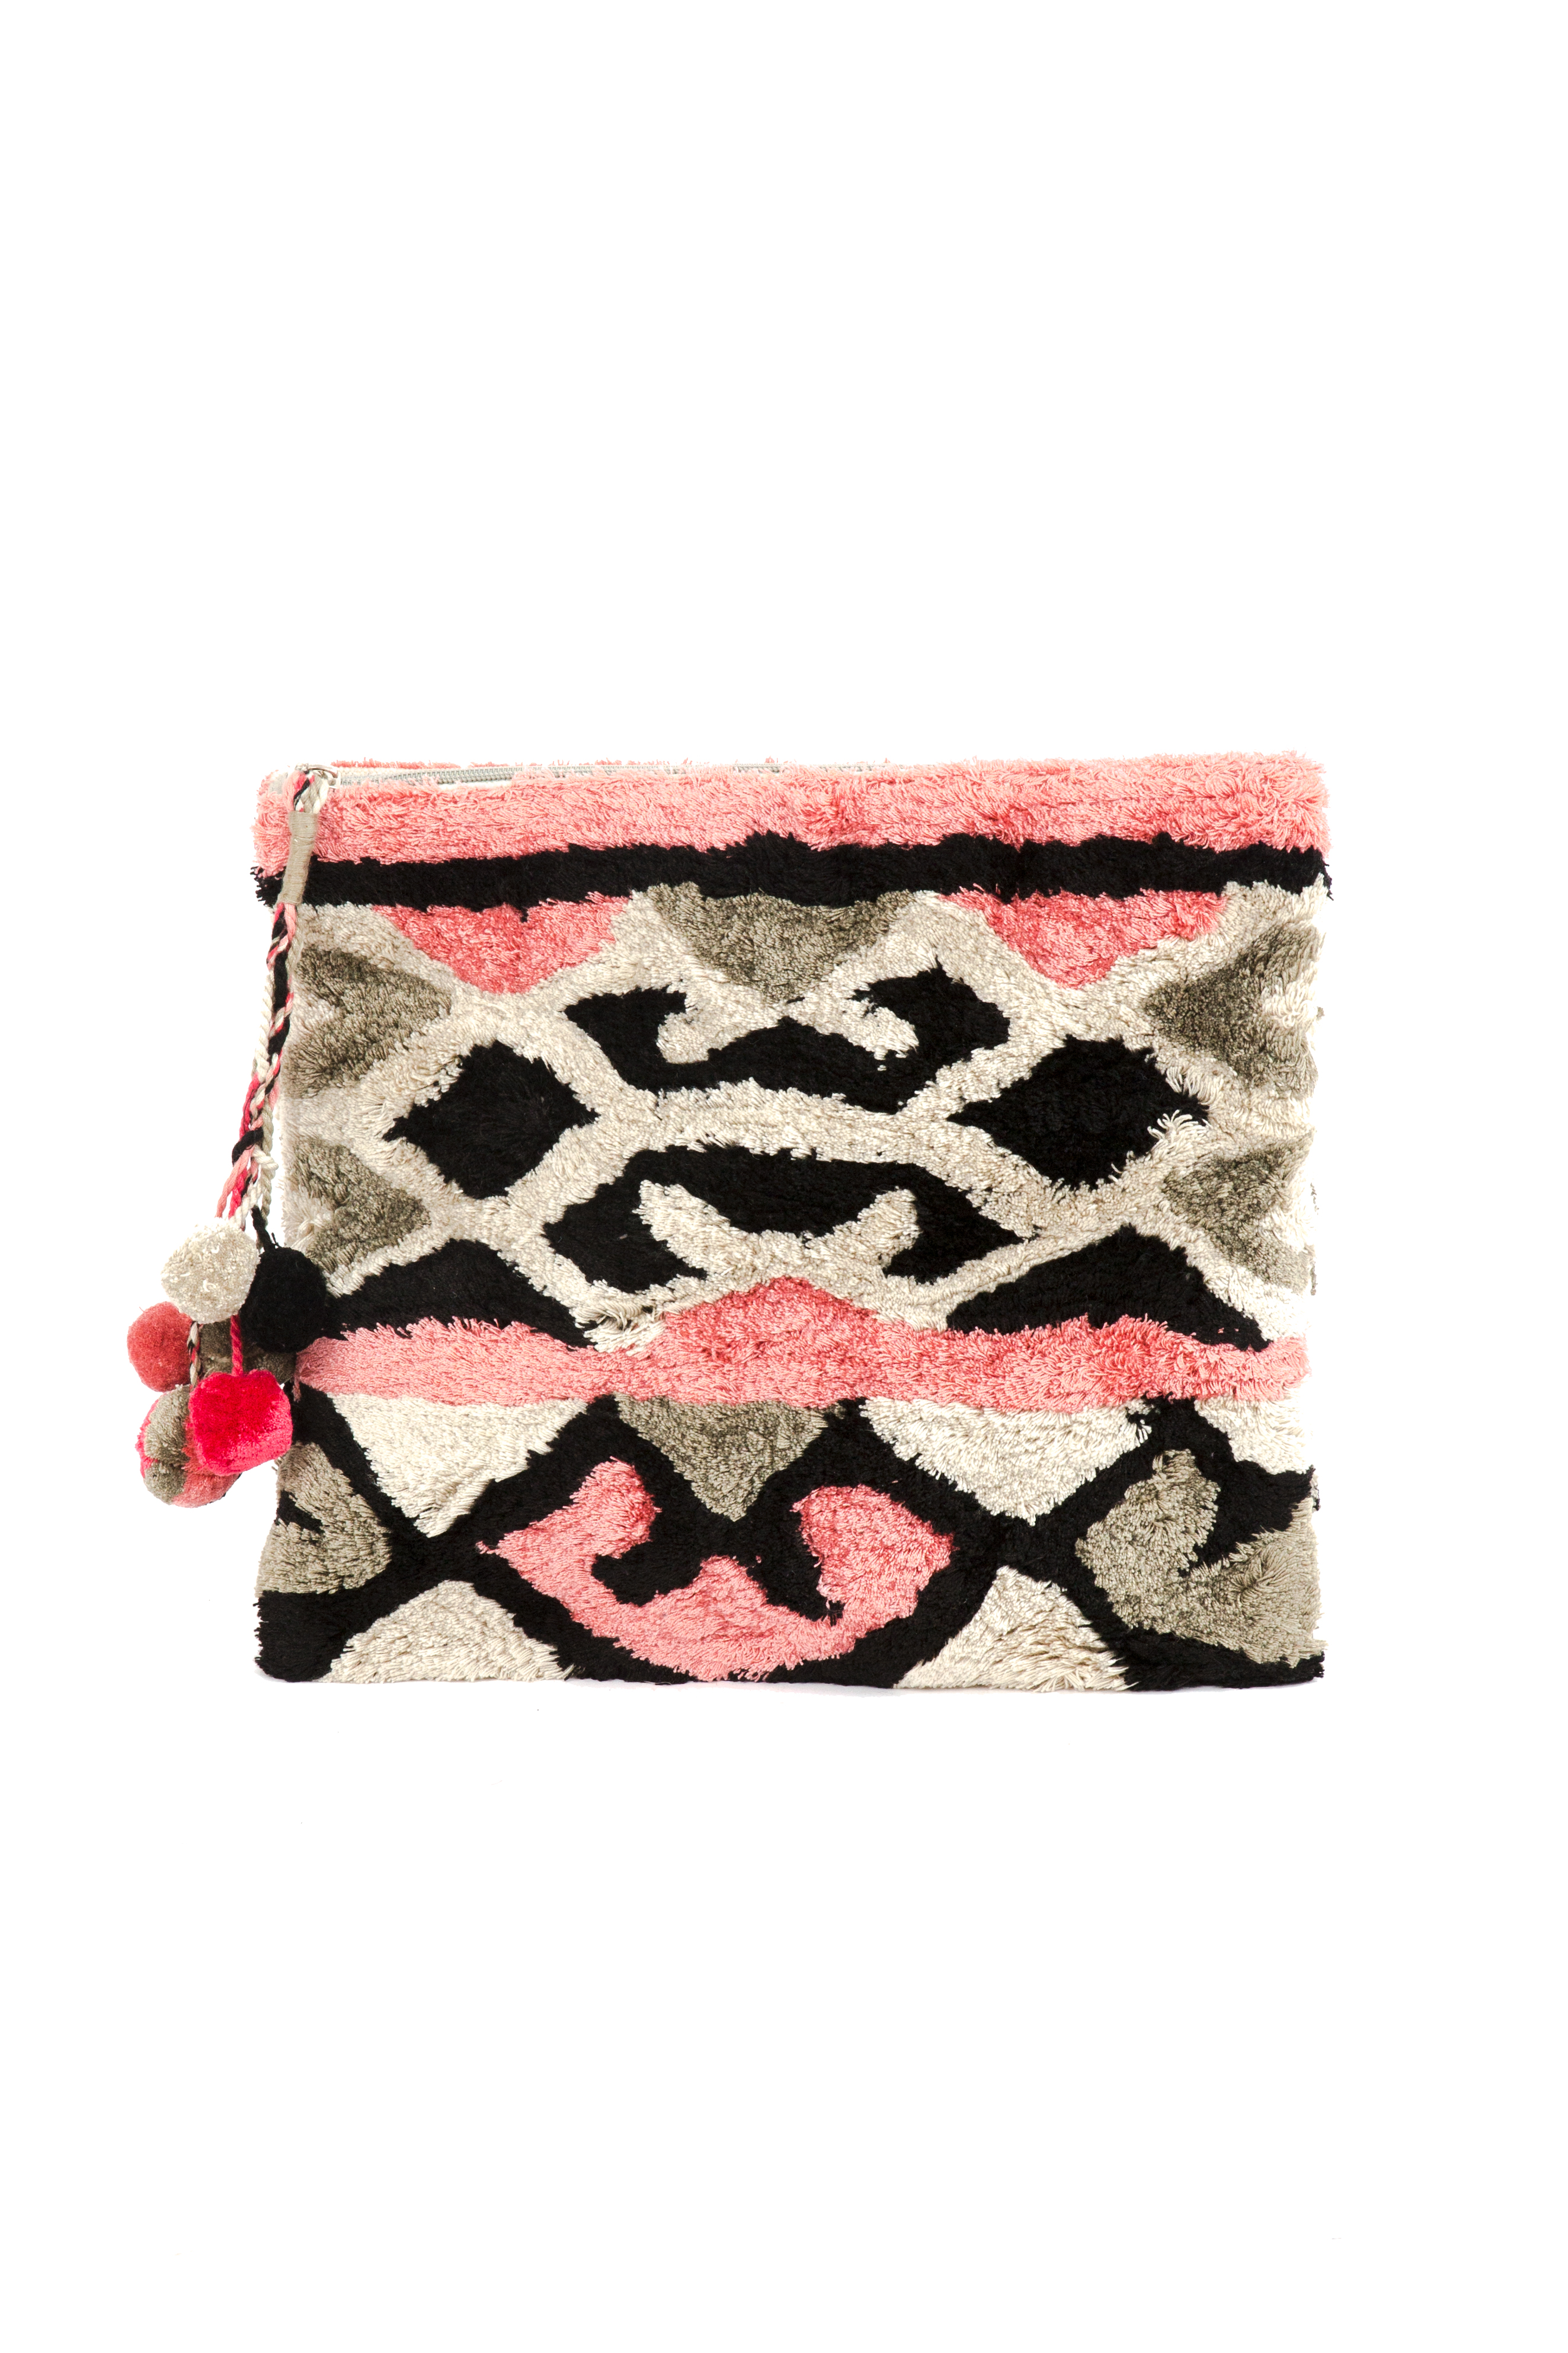 519d5132a6 RIDE THE CLUTCH BAG. Suggested Items: Last Products Viewed: RIDE THE CLUTCH  BAG-accessories-Trelise Cooper